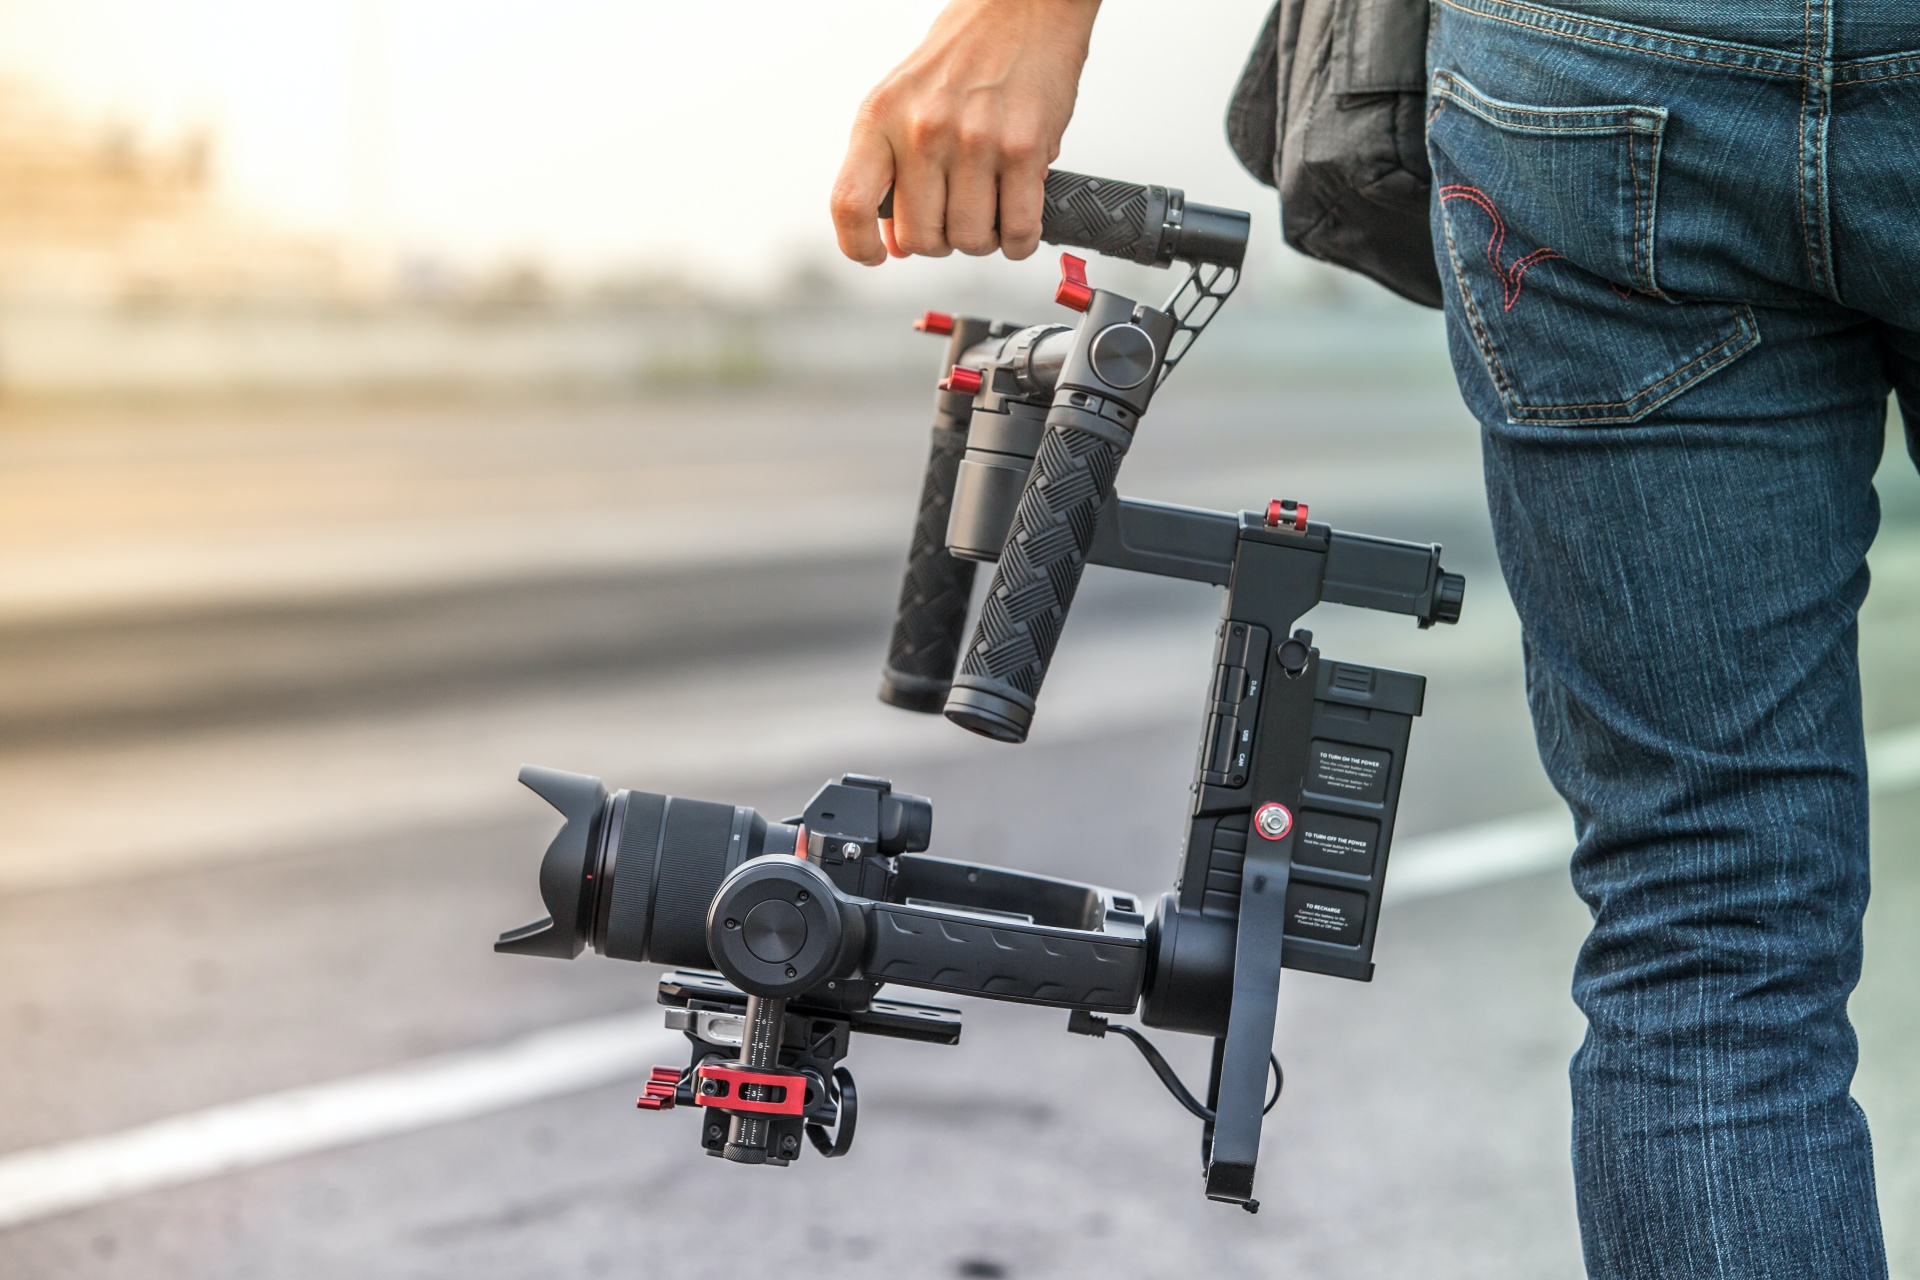 Hand holding video equipment